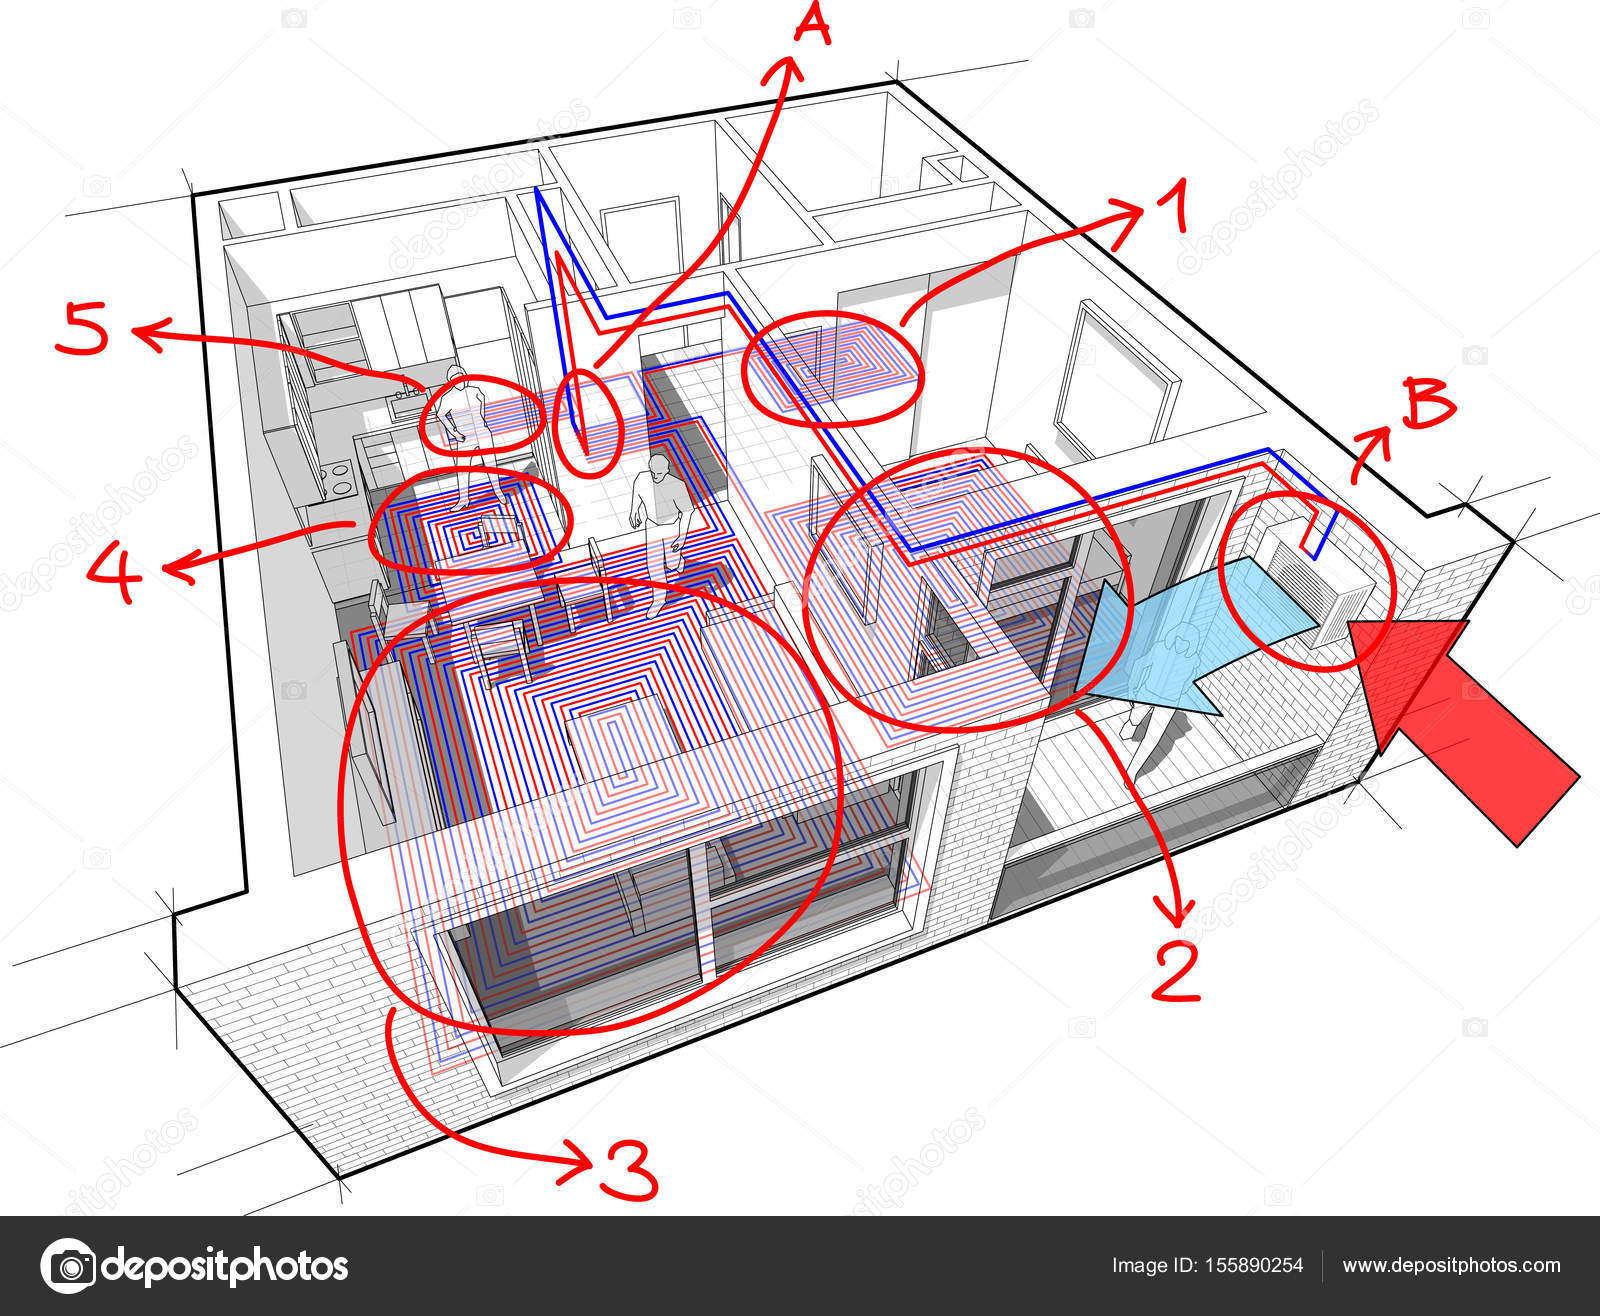 hight resolution of apartment diagram with underfloor heating and gas water boiler and air conditioning and hand drawn notes stock illustration